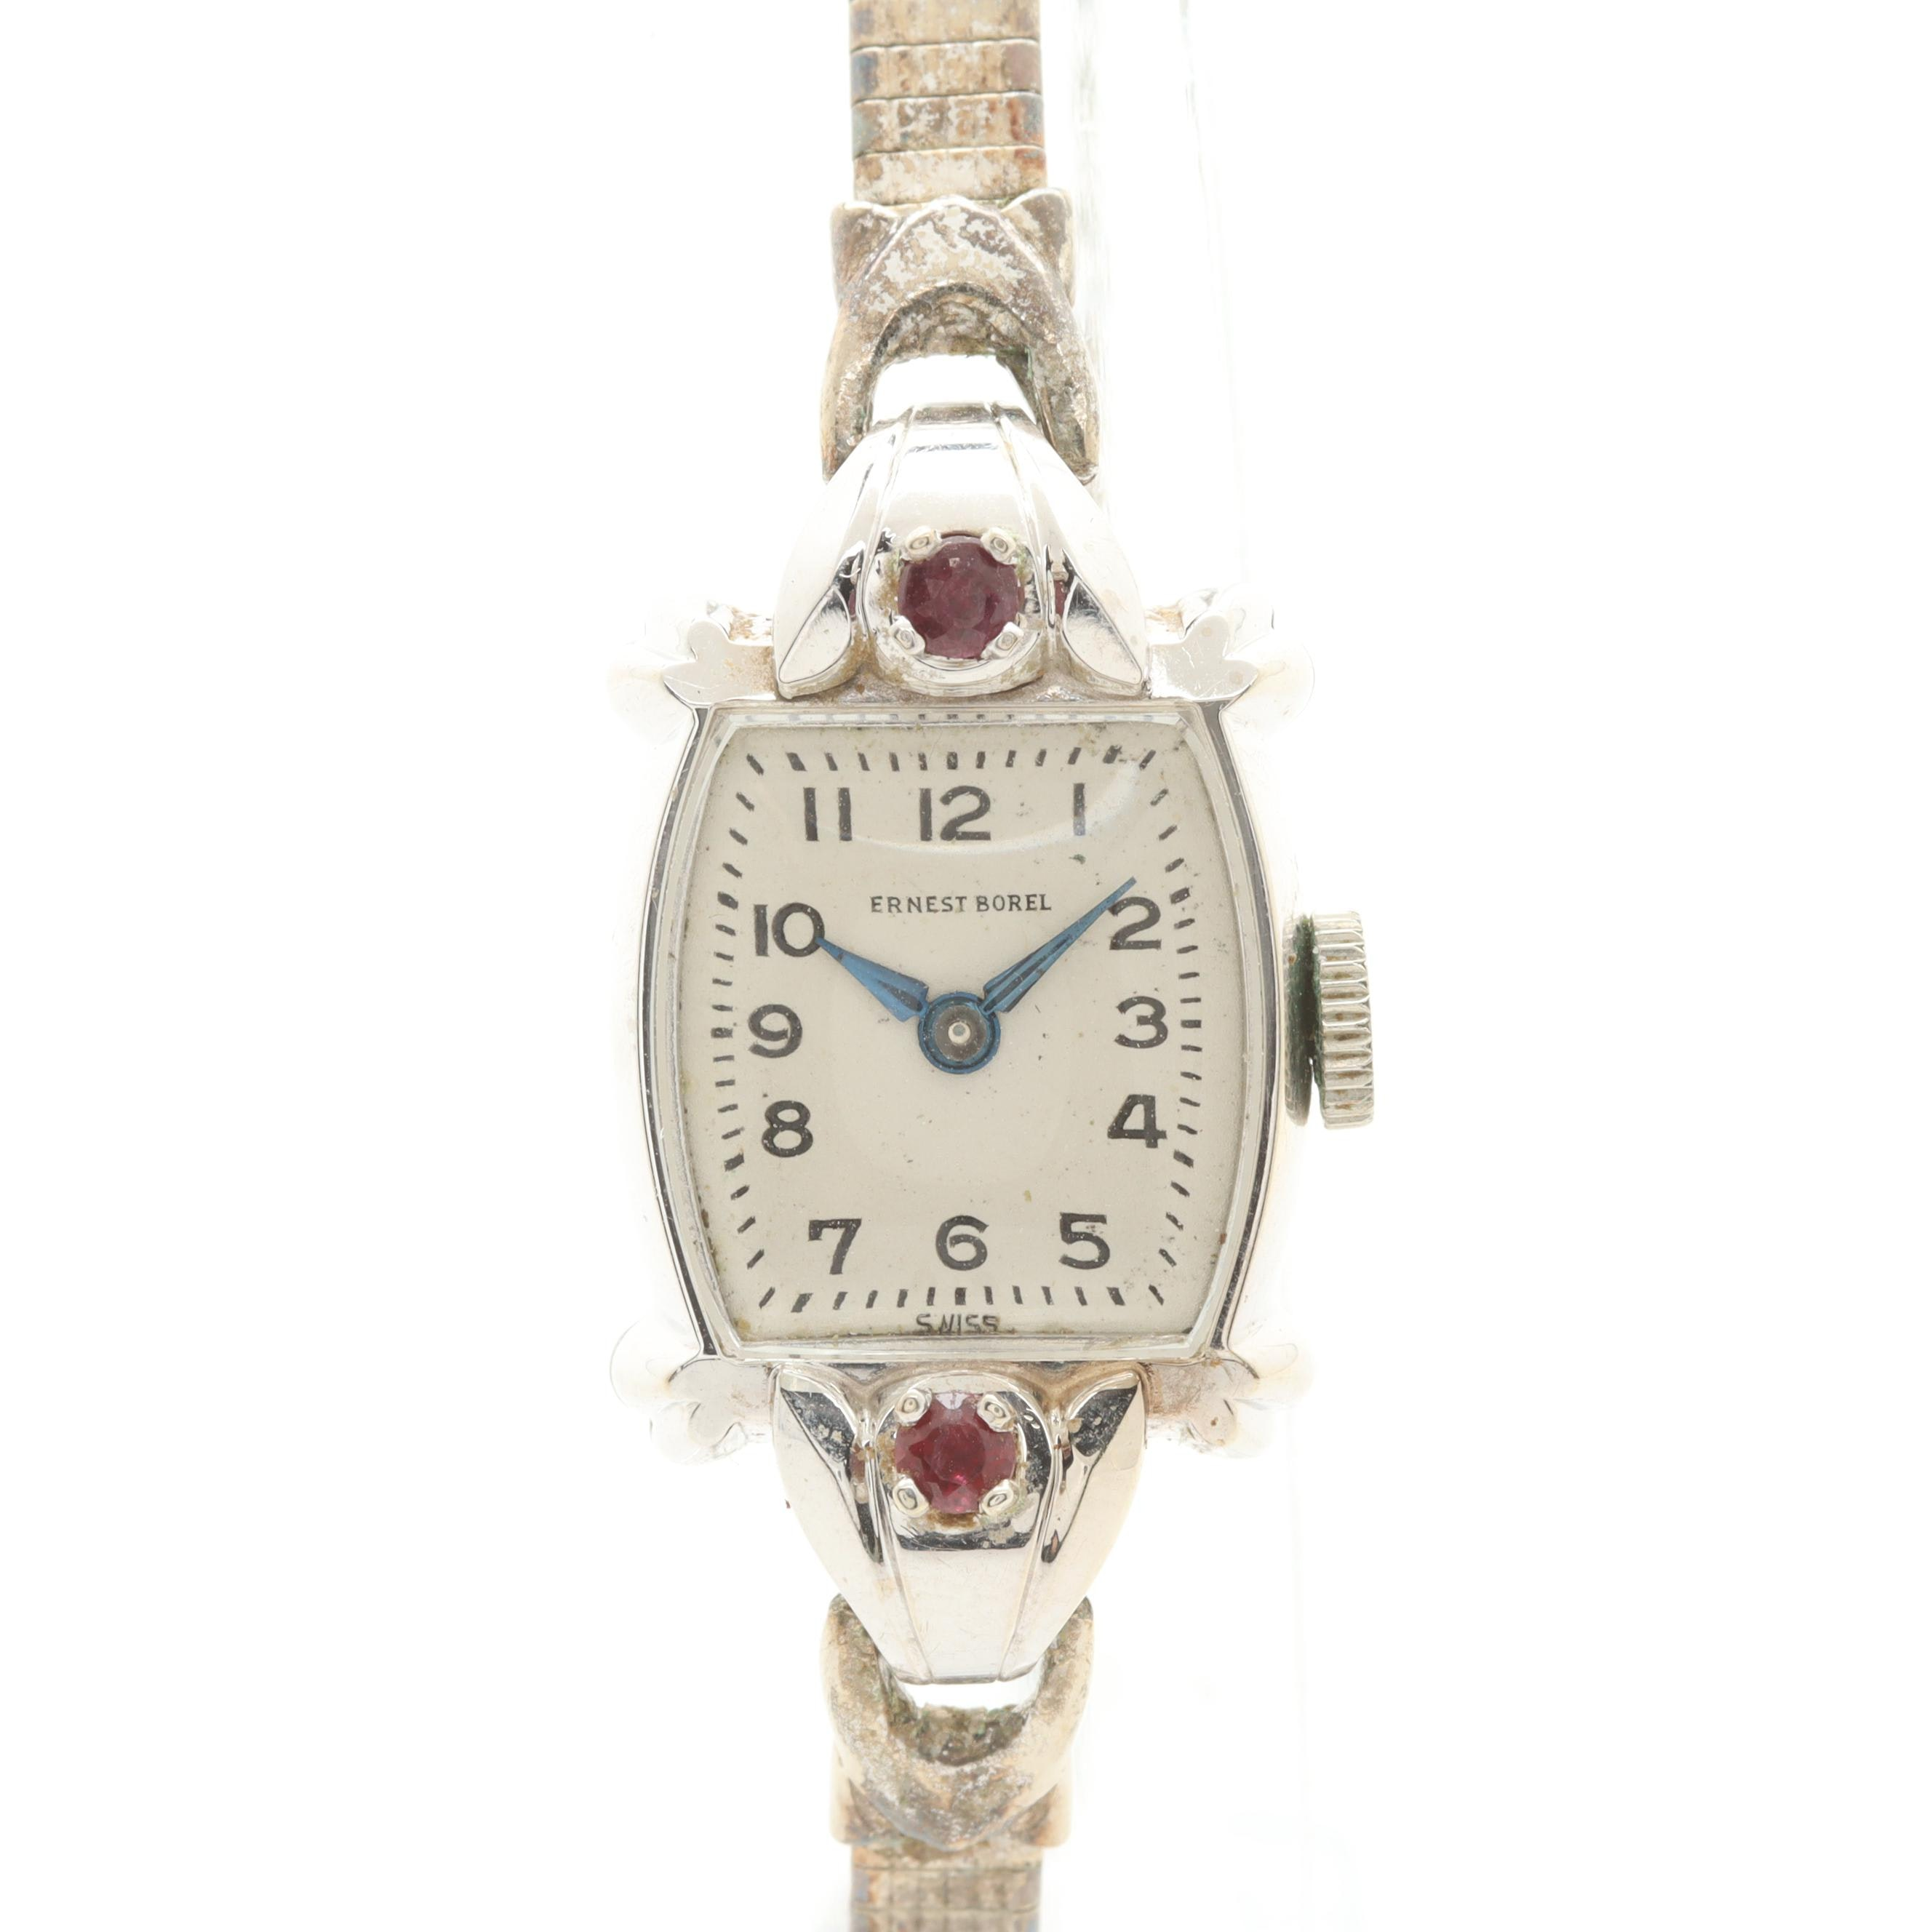 Ernest Borel 14K White Gold Ruby Accented Wristwatch